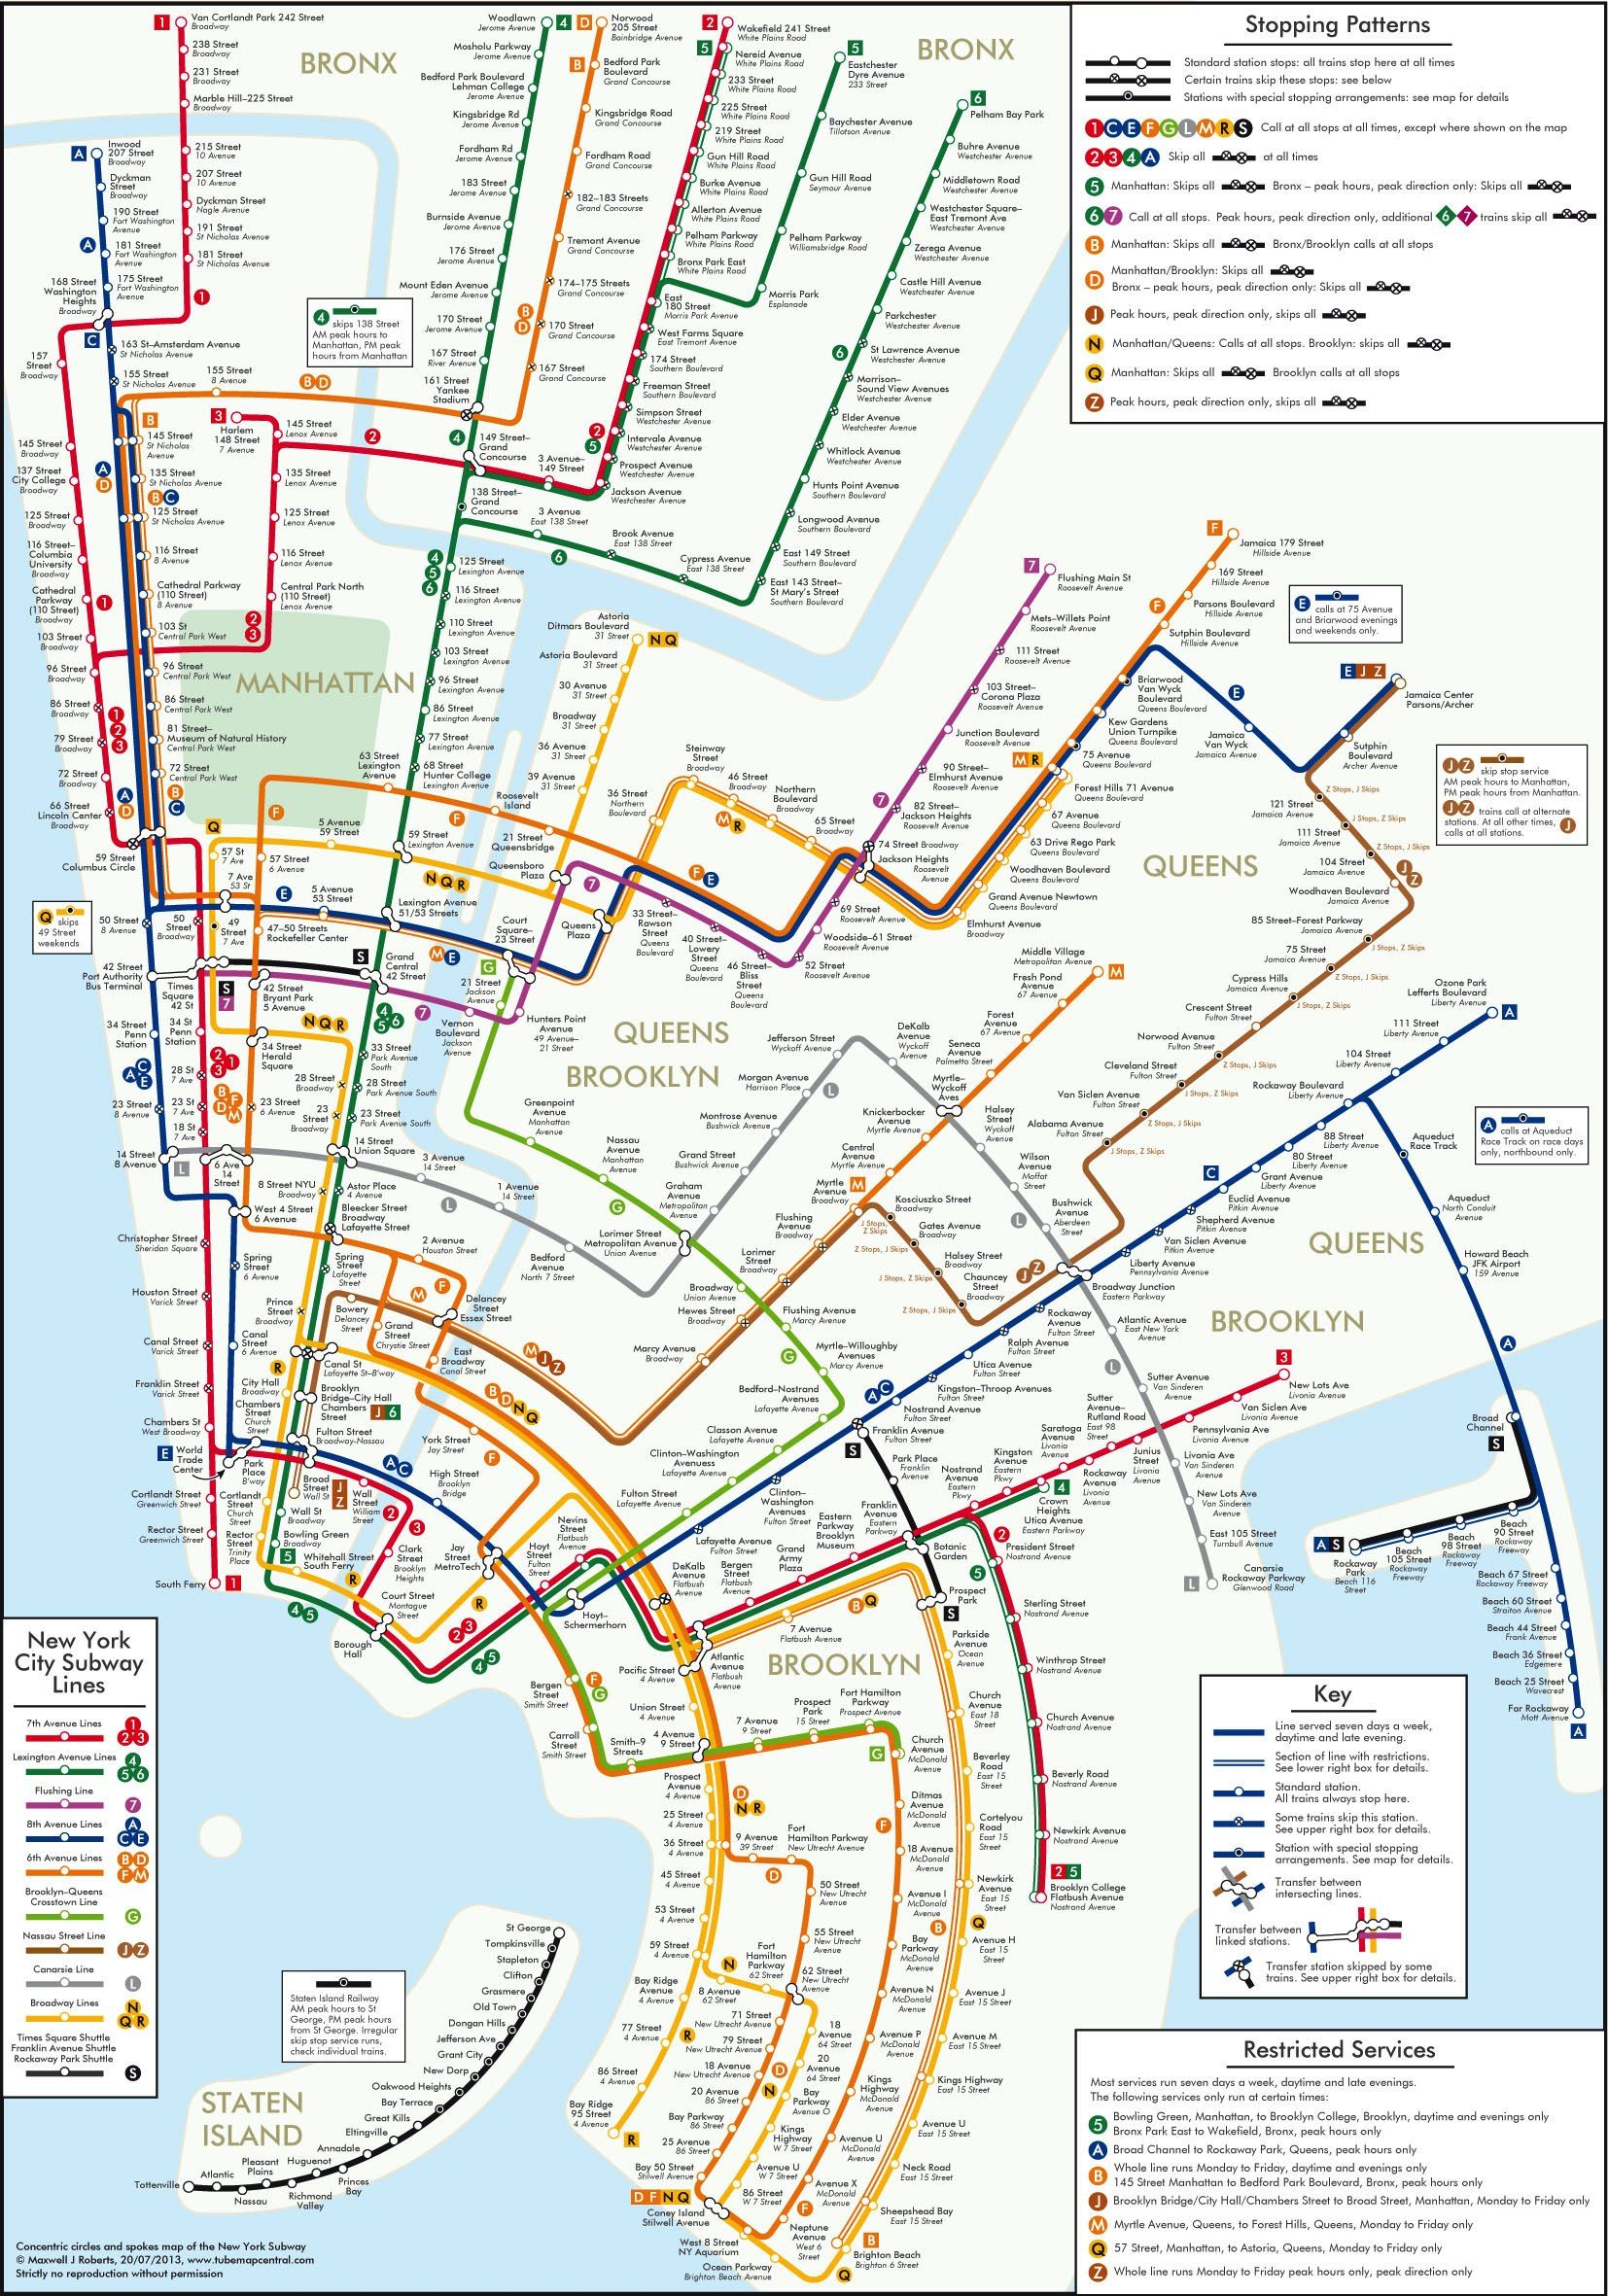 Mta Subway Map In 1990.This Guy S Never Met A Map He Didn T Want To Fix Cause I M A